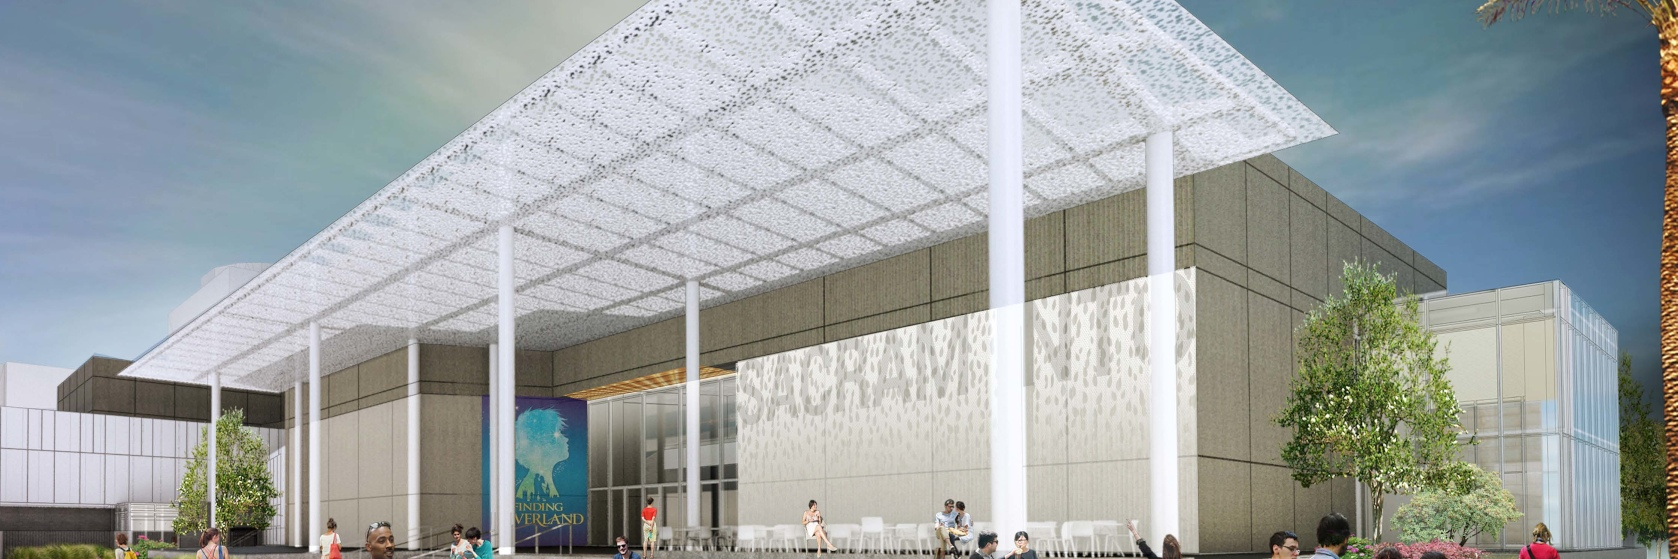 SAFE Credit Union Convention Center night rendering